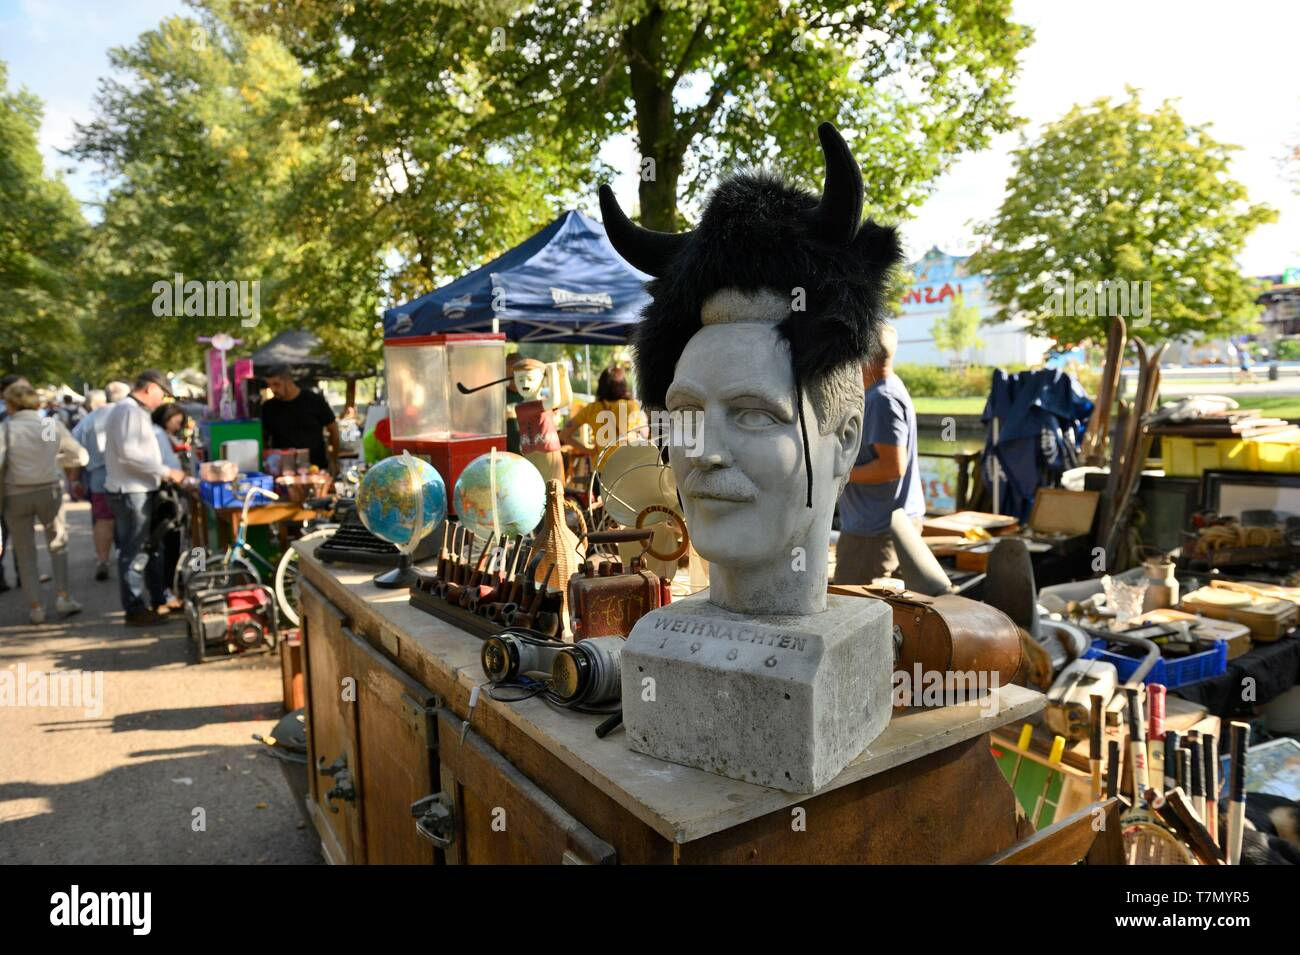 France, Nord, Lille, 2017 clearance sale, second-hand dealers along the esplanade, sculpture of a mustachioed man's head surmounted by horns in a moumoute - Stock Image